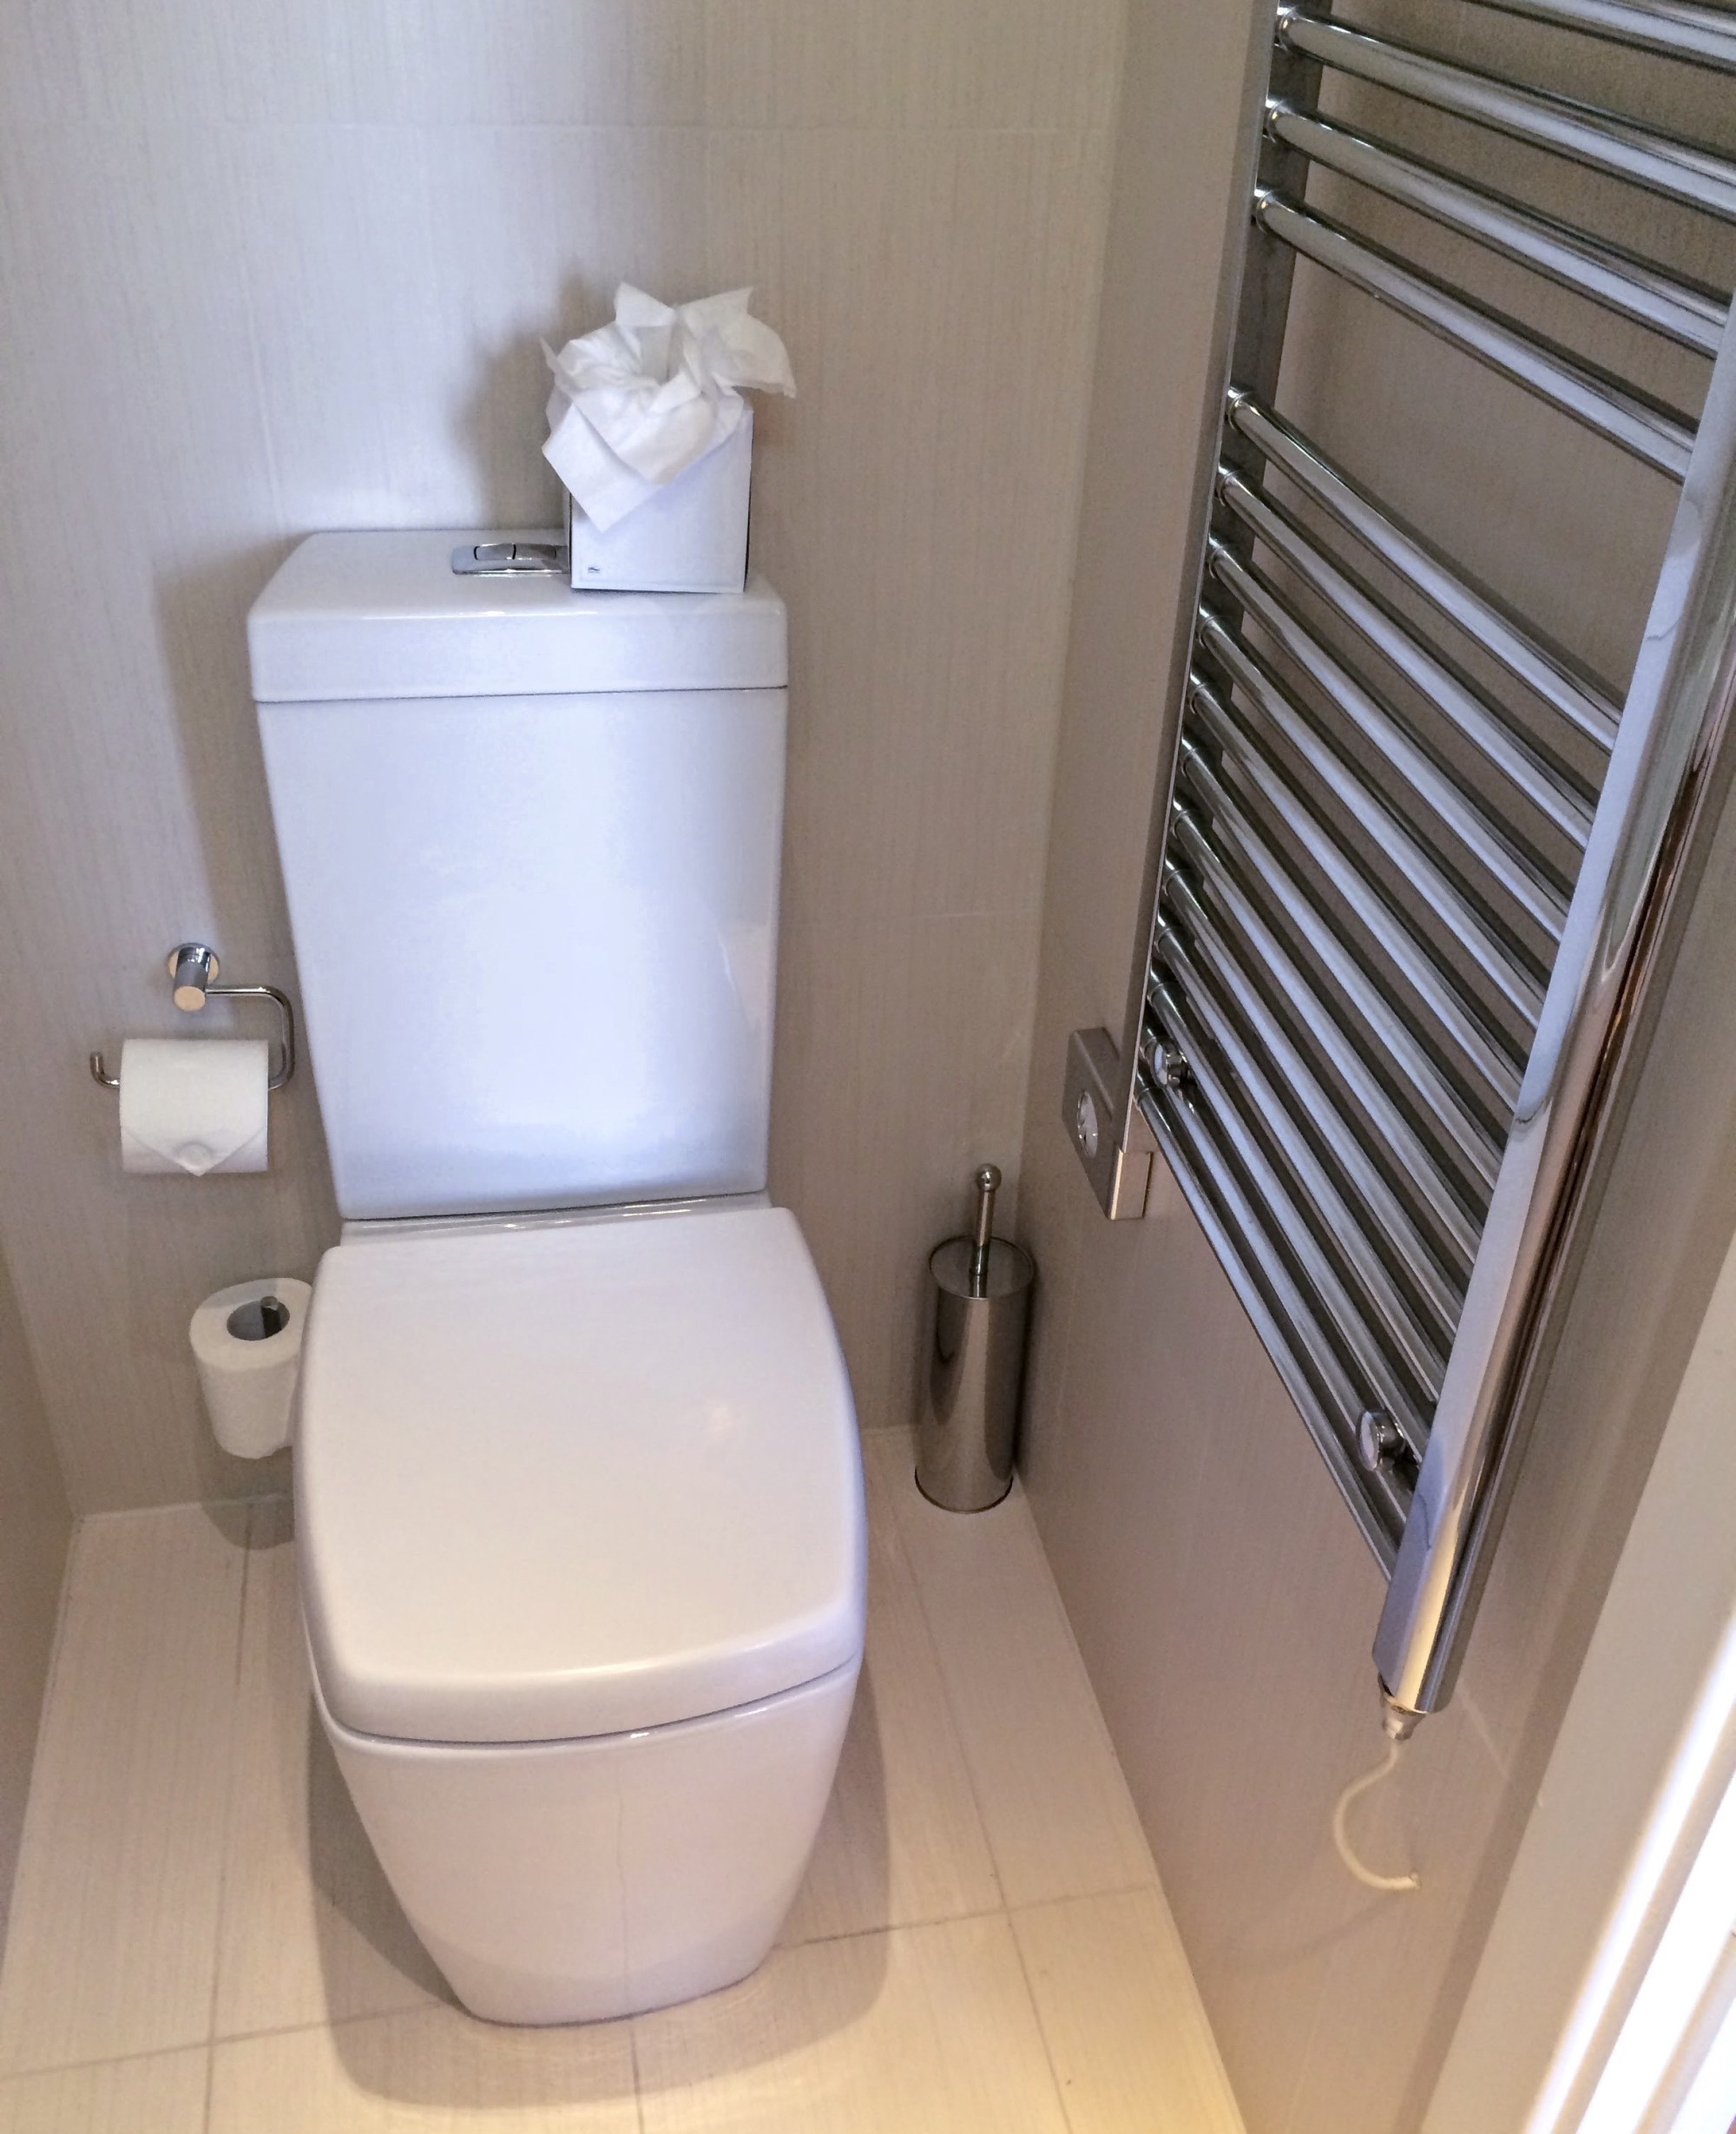 hight resolution of diagram of part of toilet